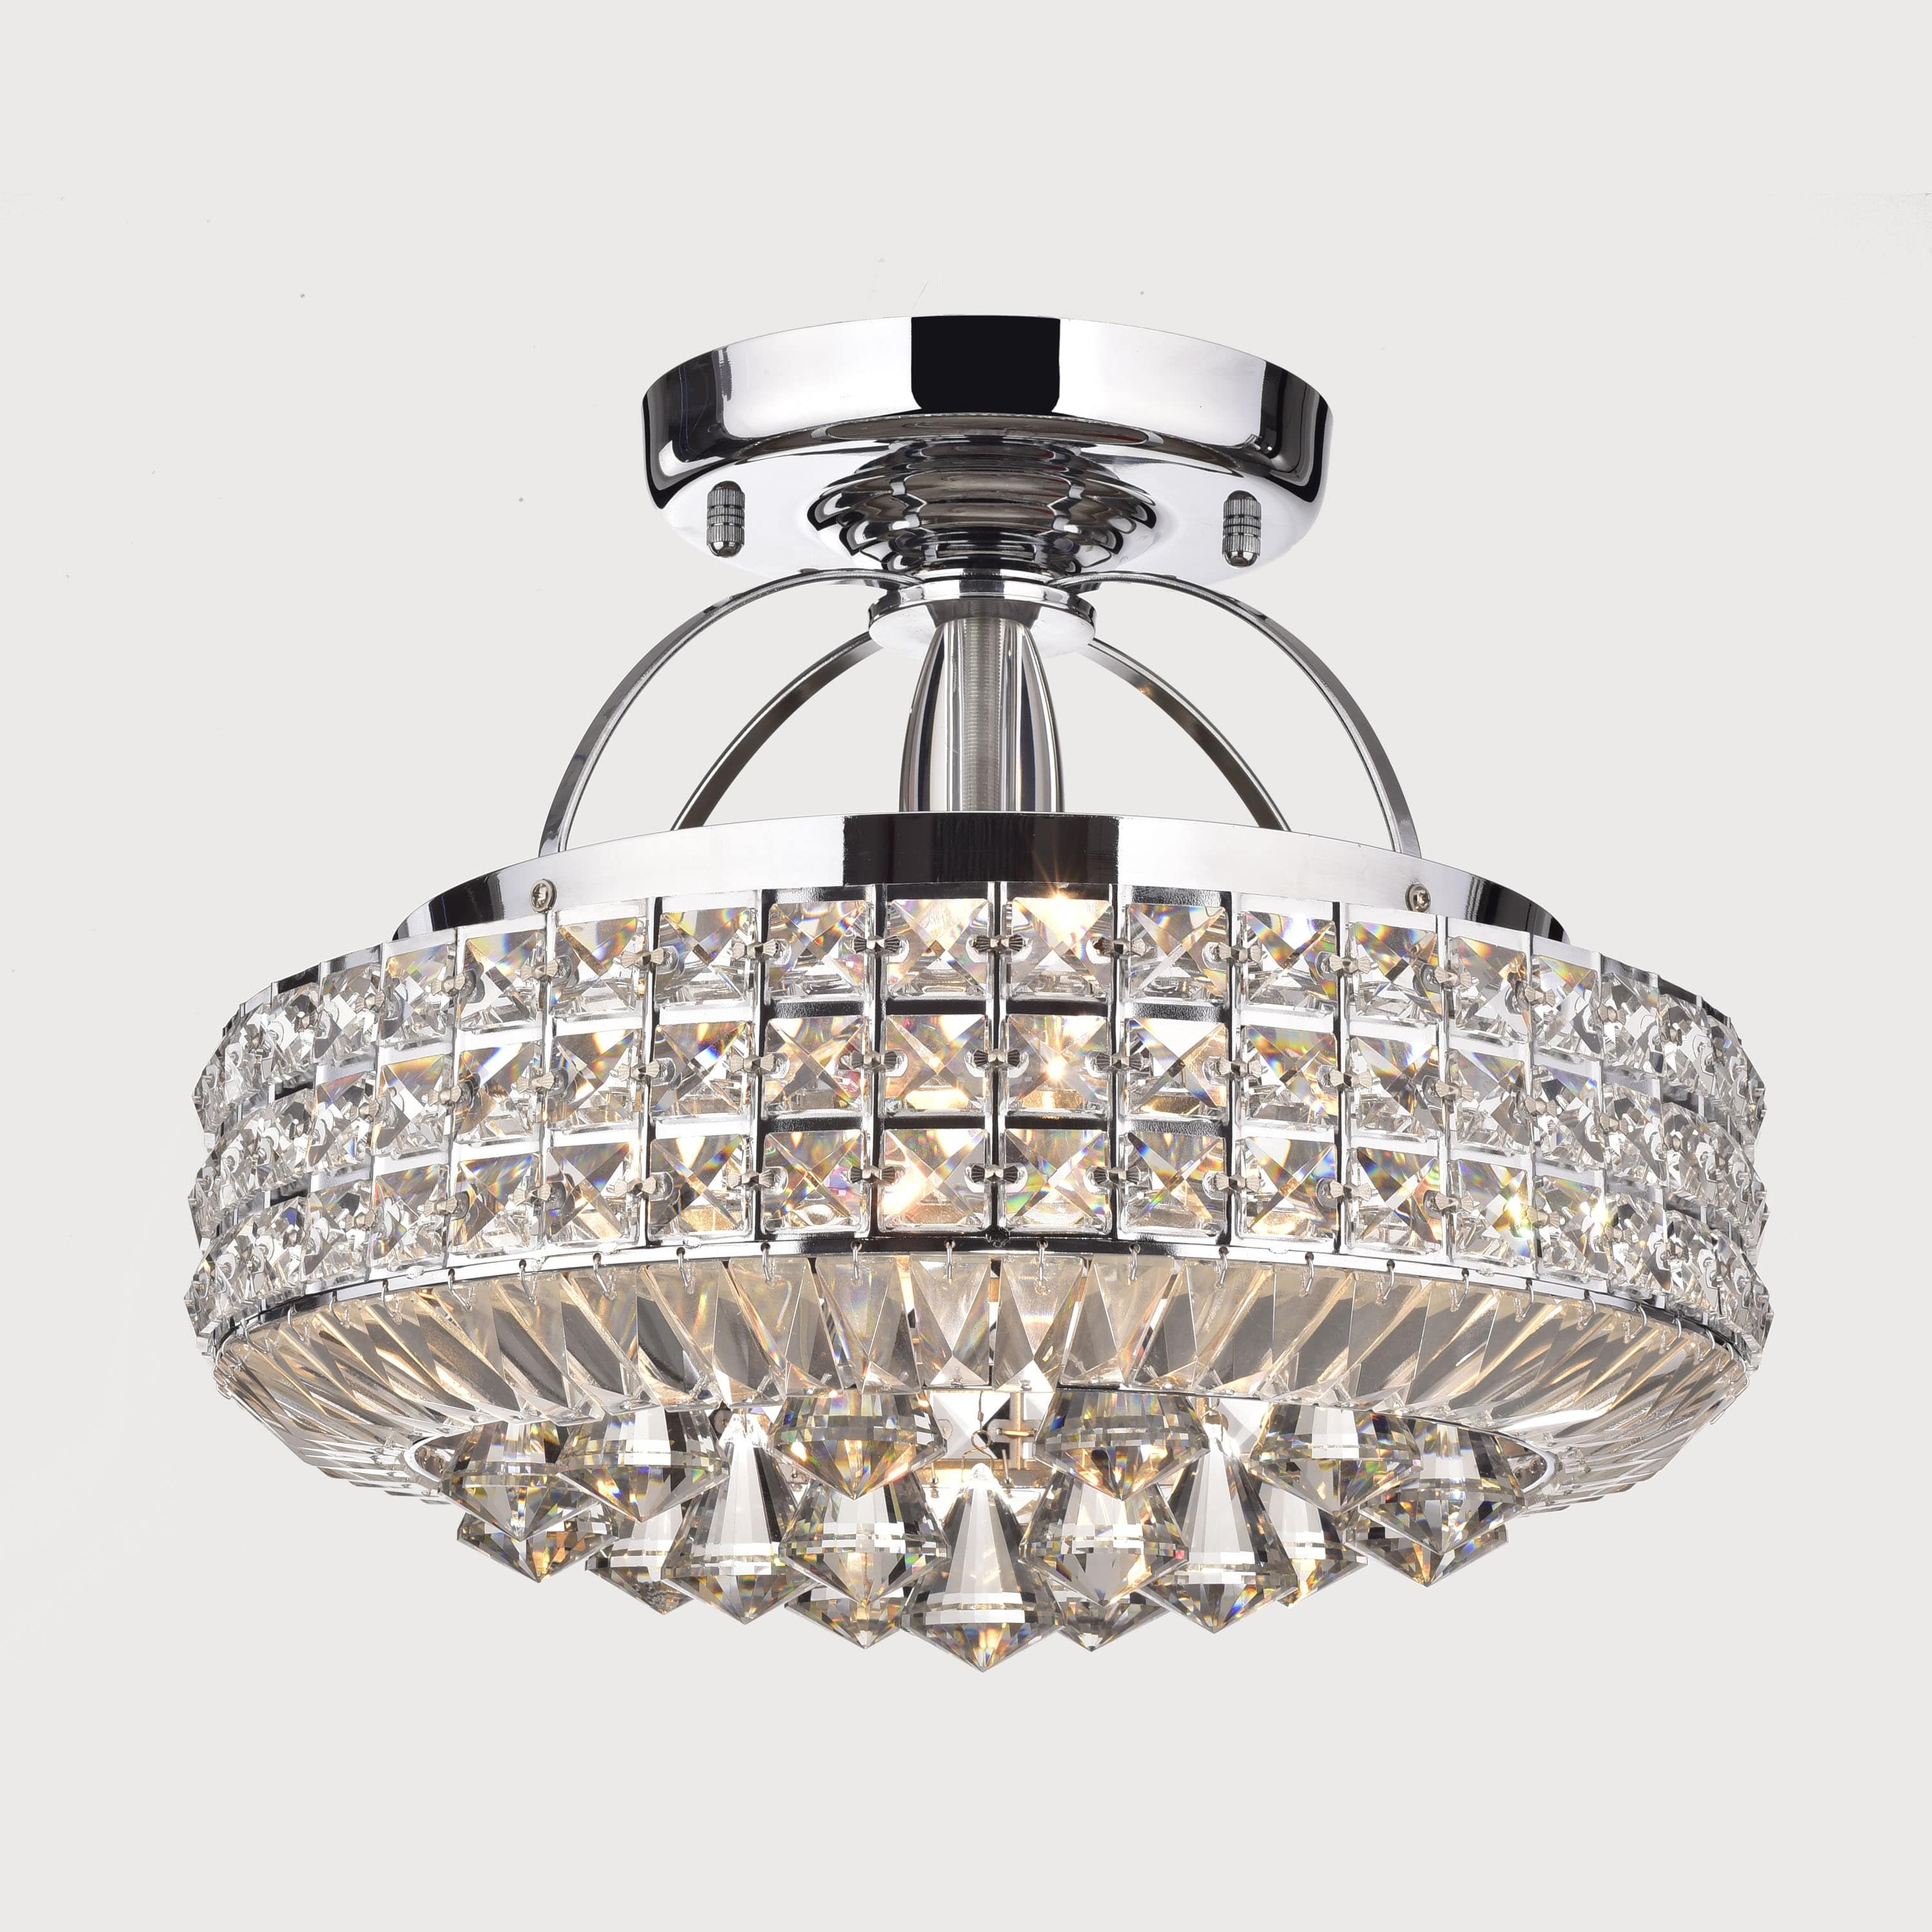 Flush Chandelier Pertaining To Current Jolie Chrome Drum Shade Crystal Semi Flush Mount Chandelier – Free (View 18 of 20)